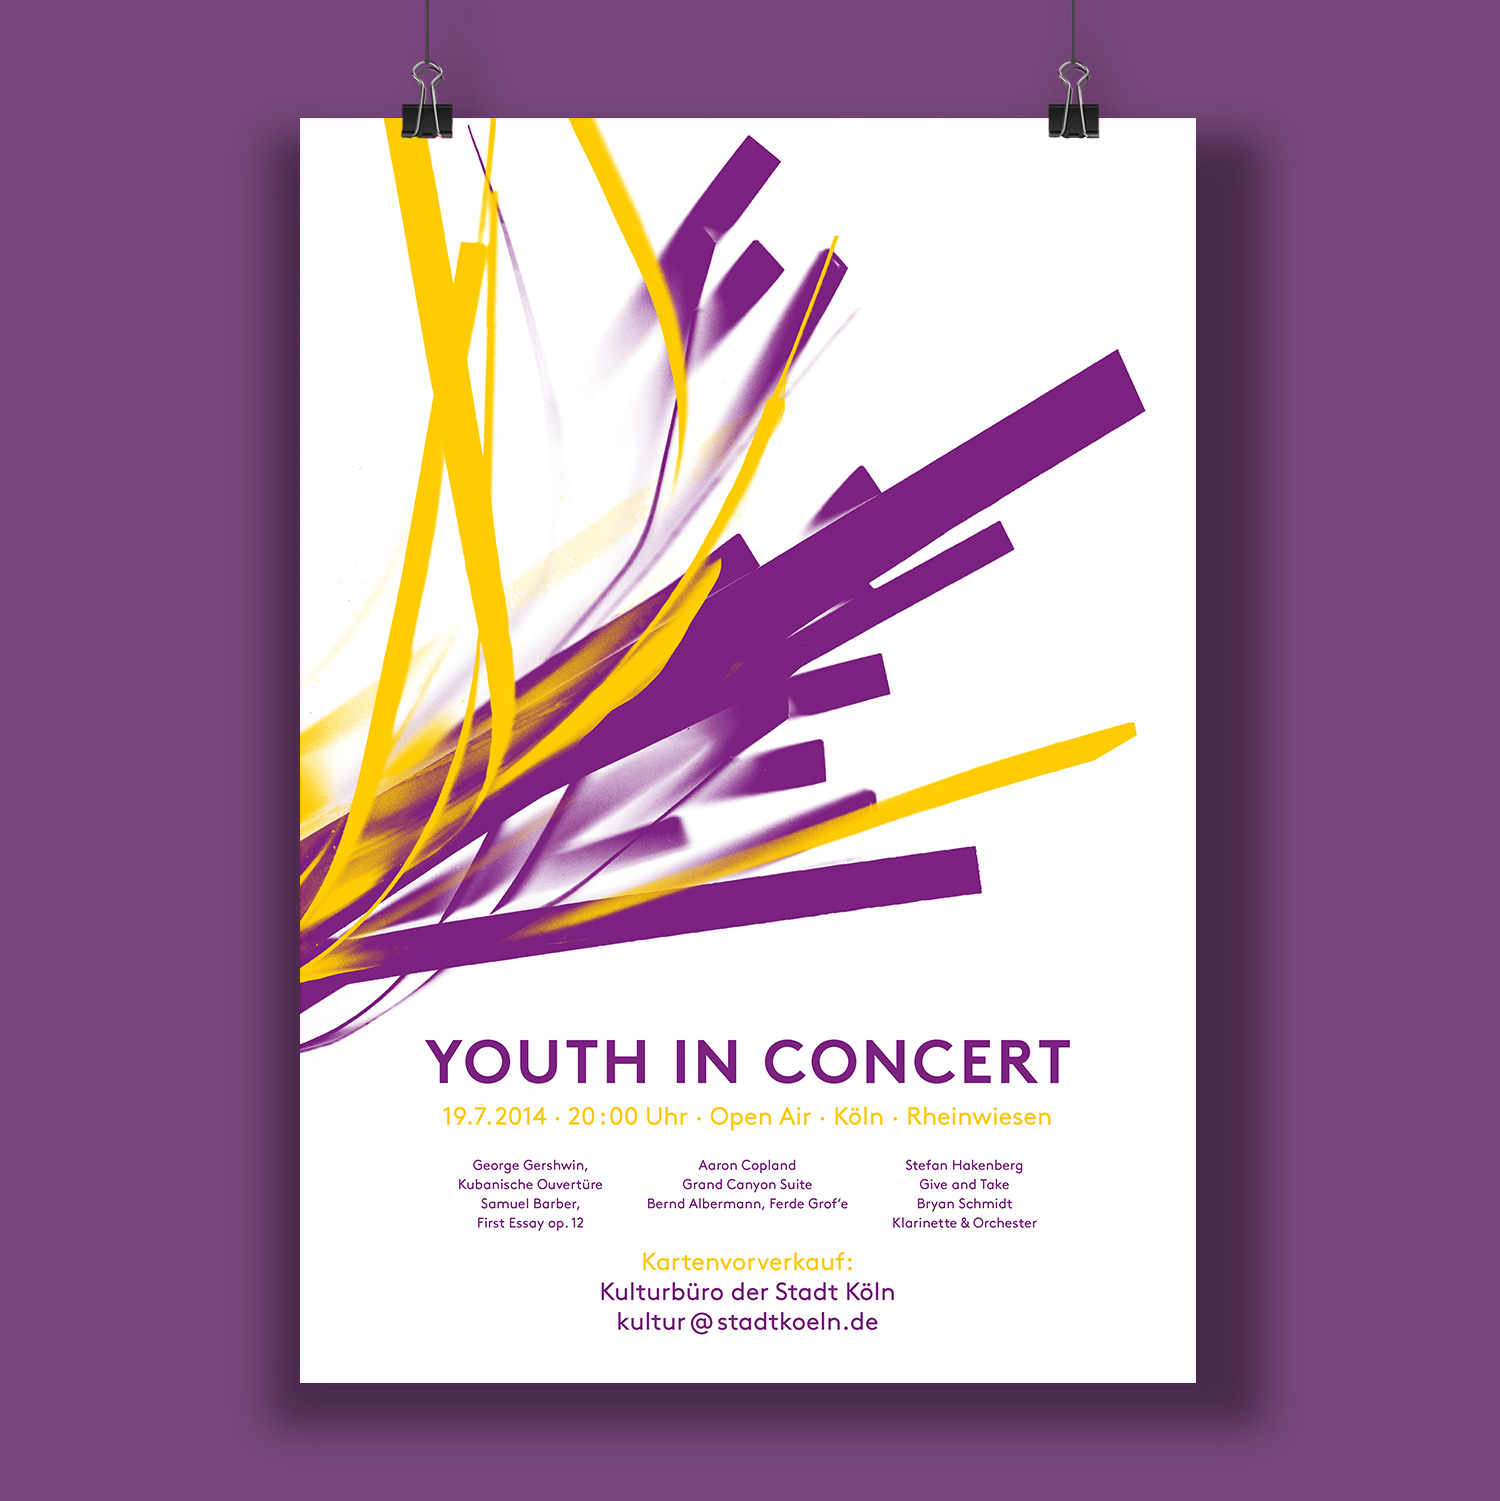 youthinconcert_poster